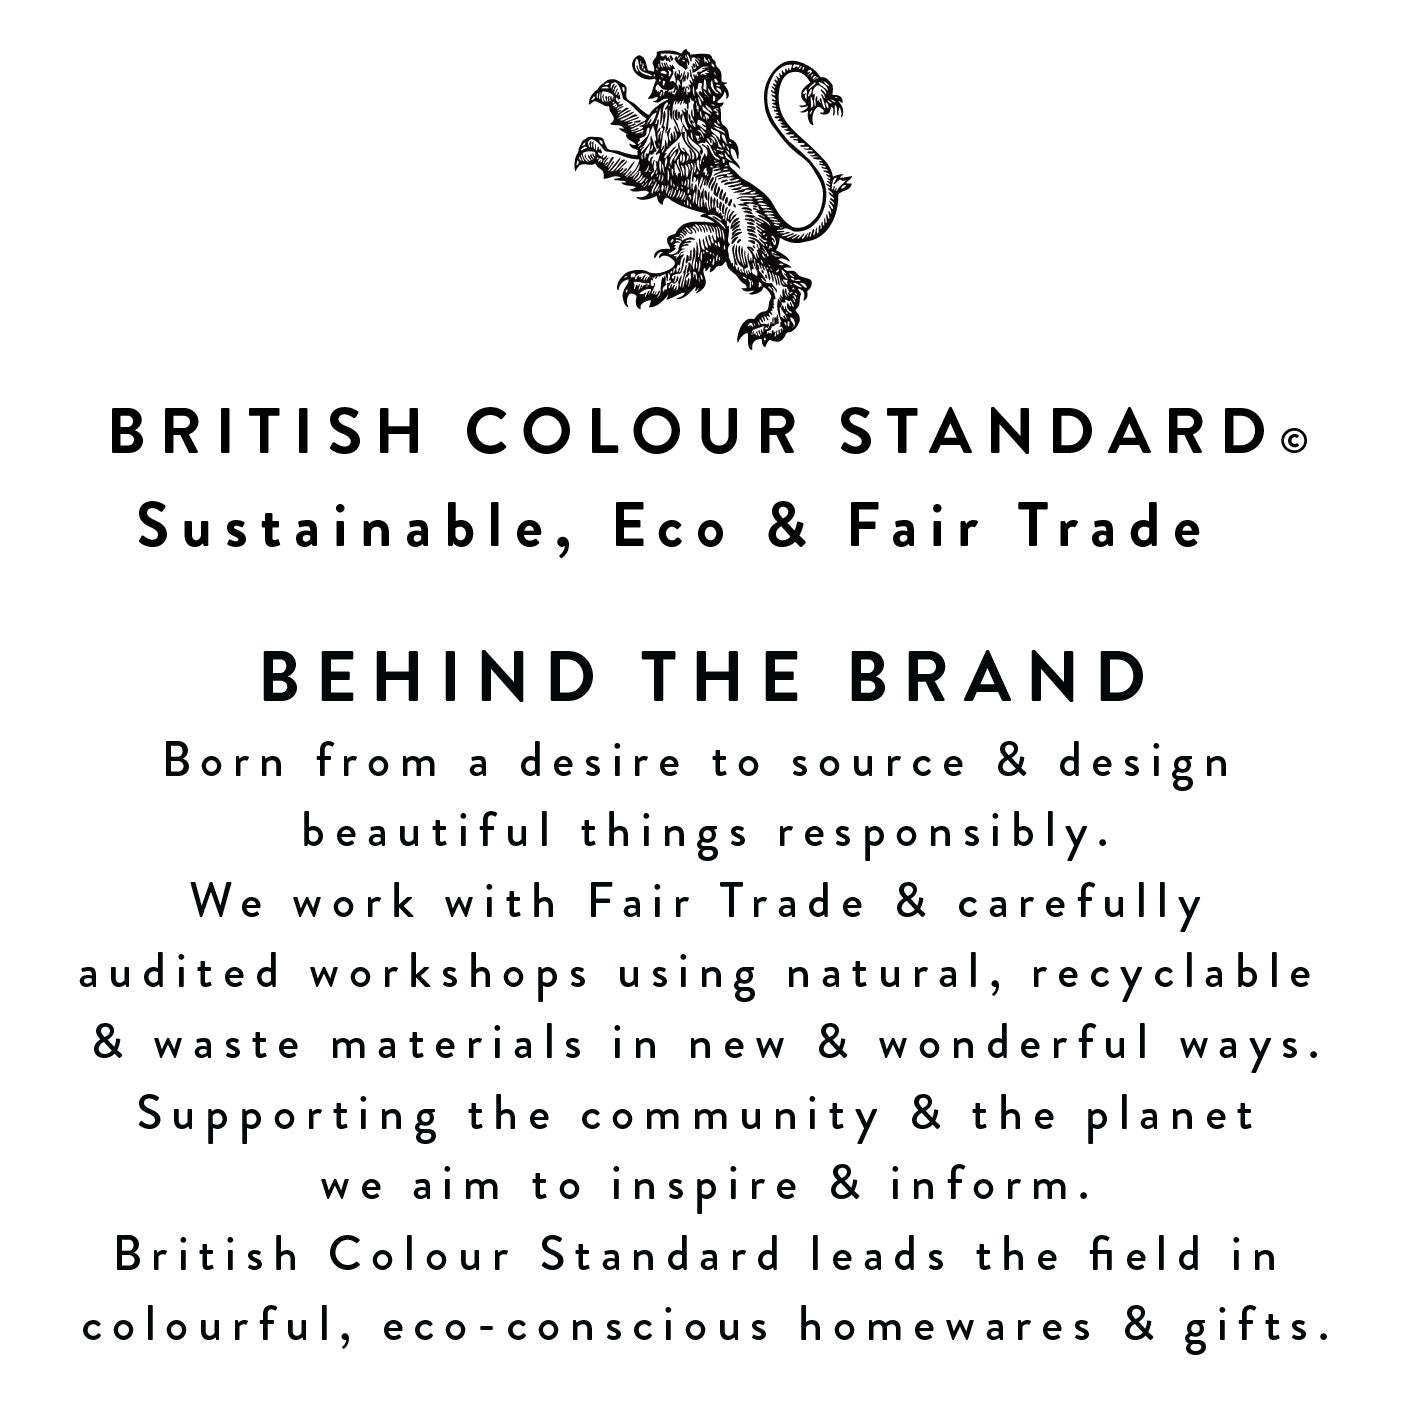 BRITISH COLOUR STANDARD Cotton Tote Bag